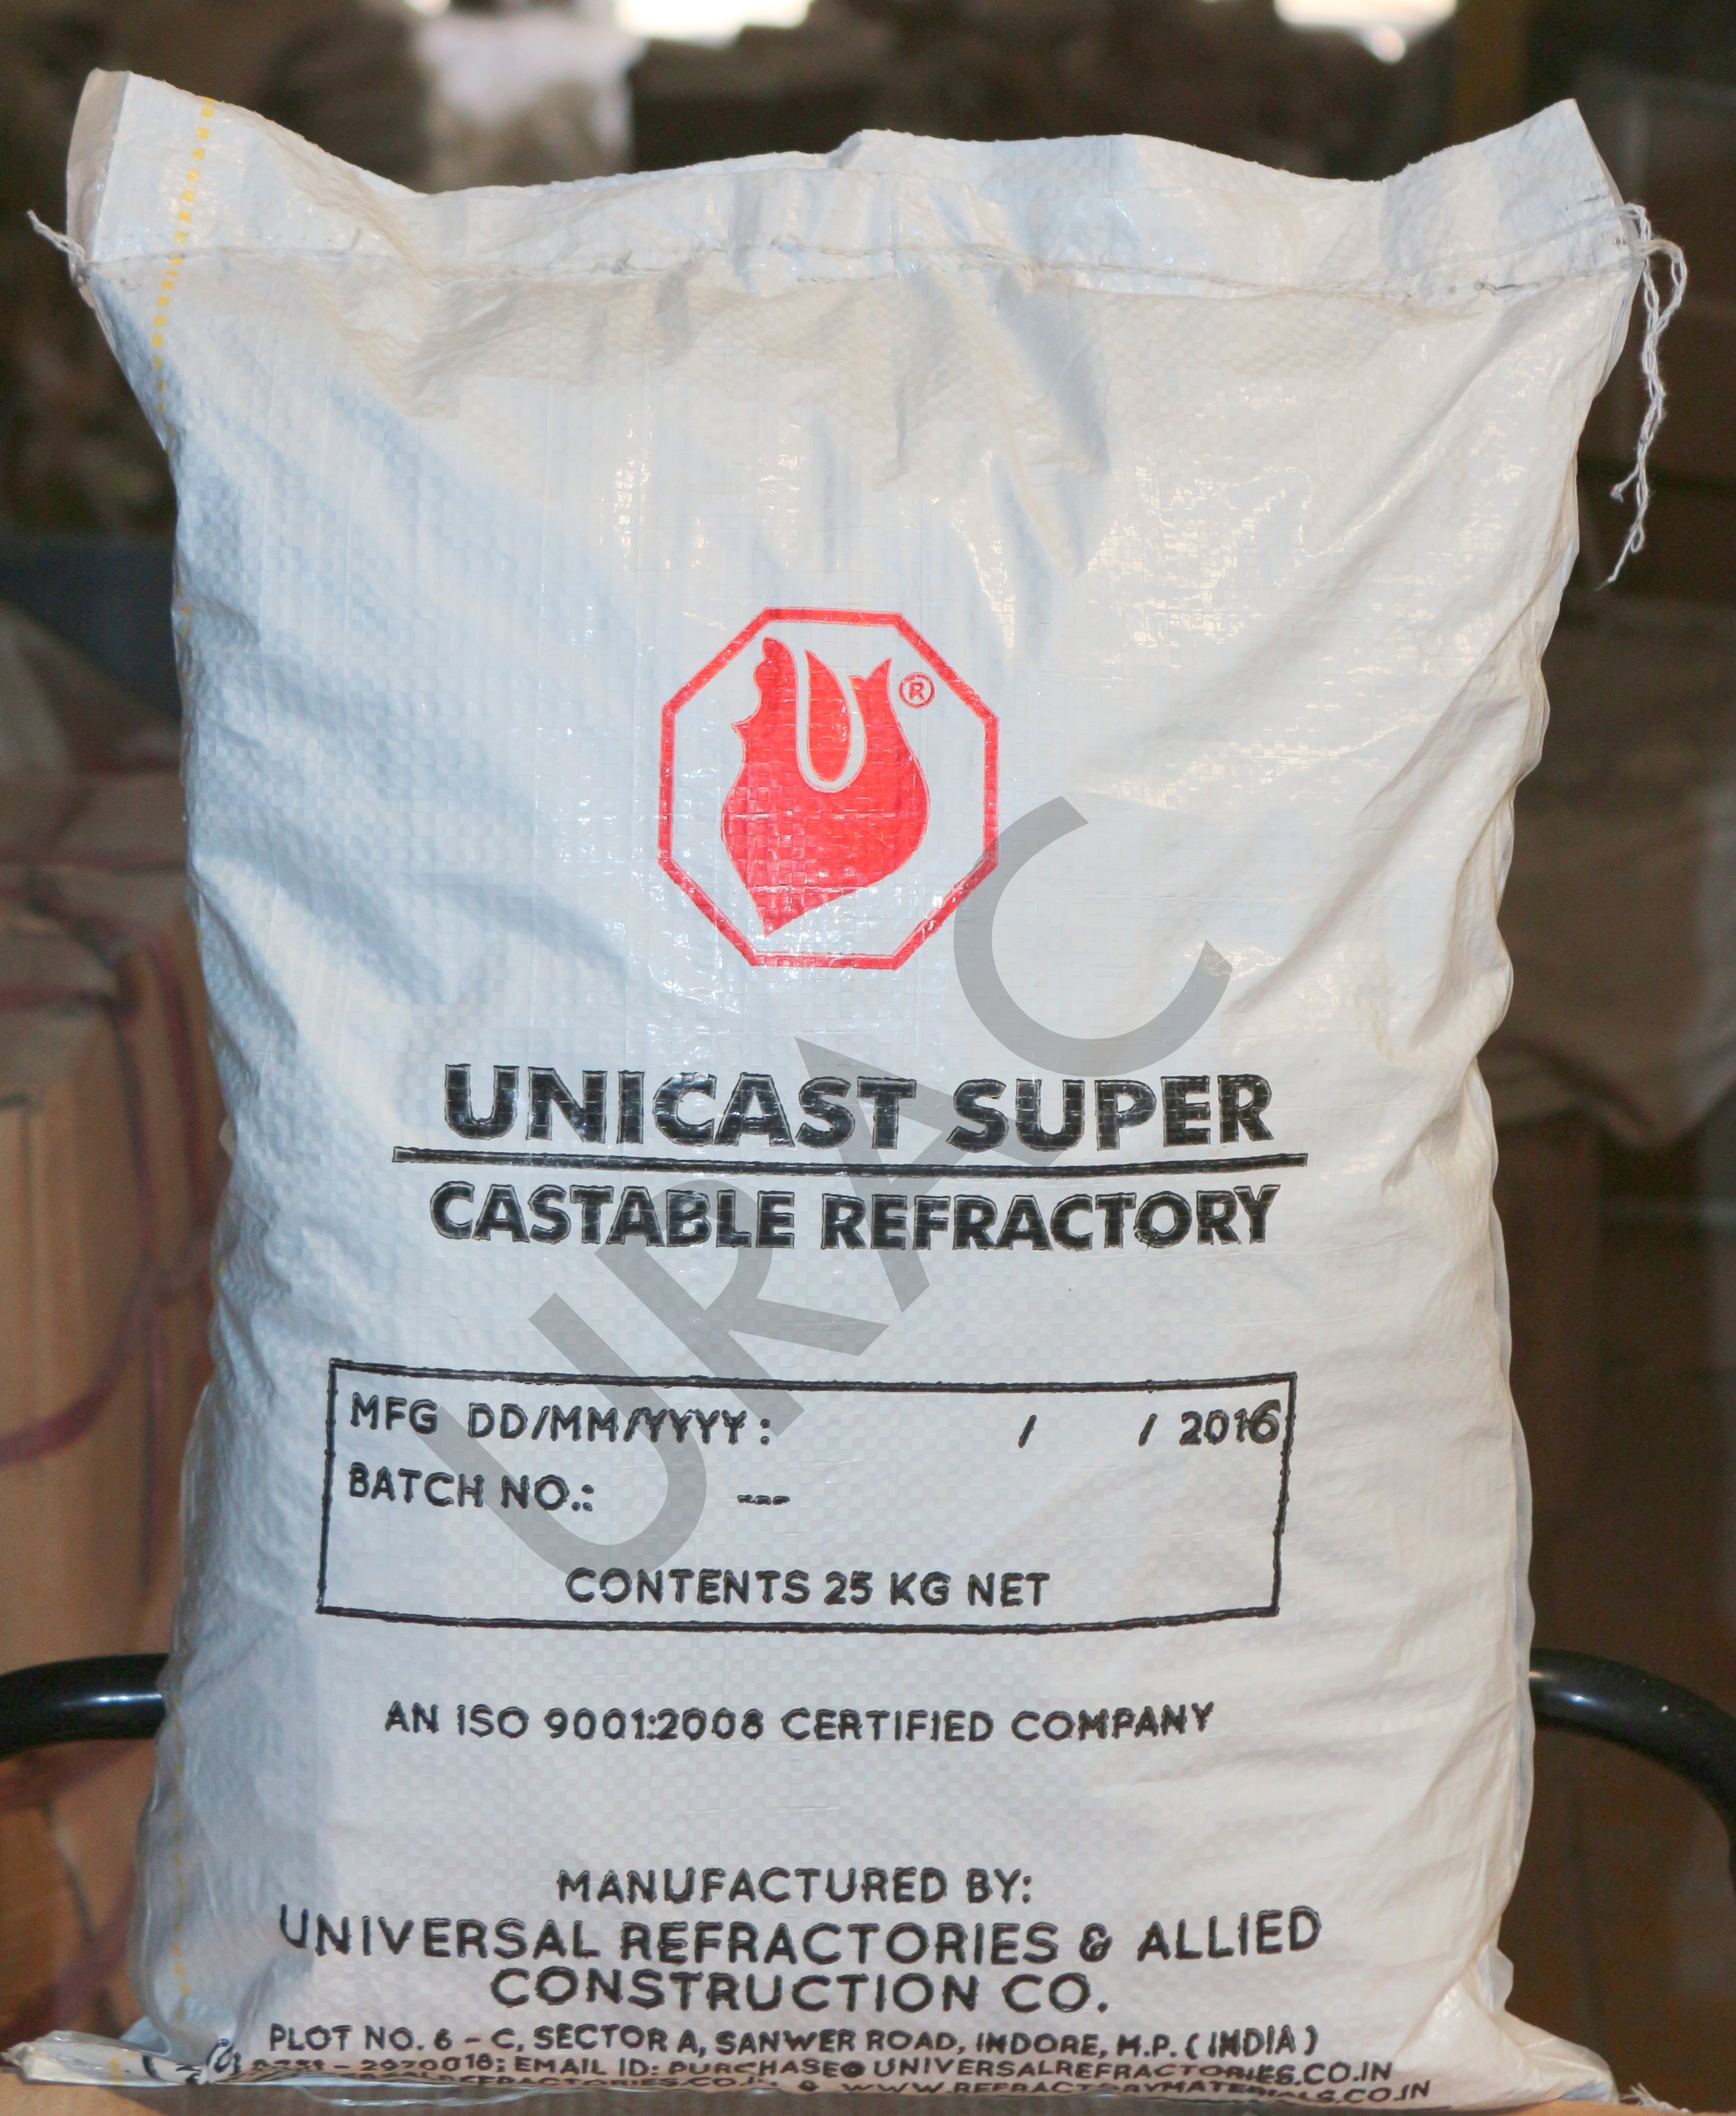 Refractory Unicast Super Castable